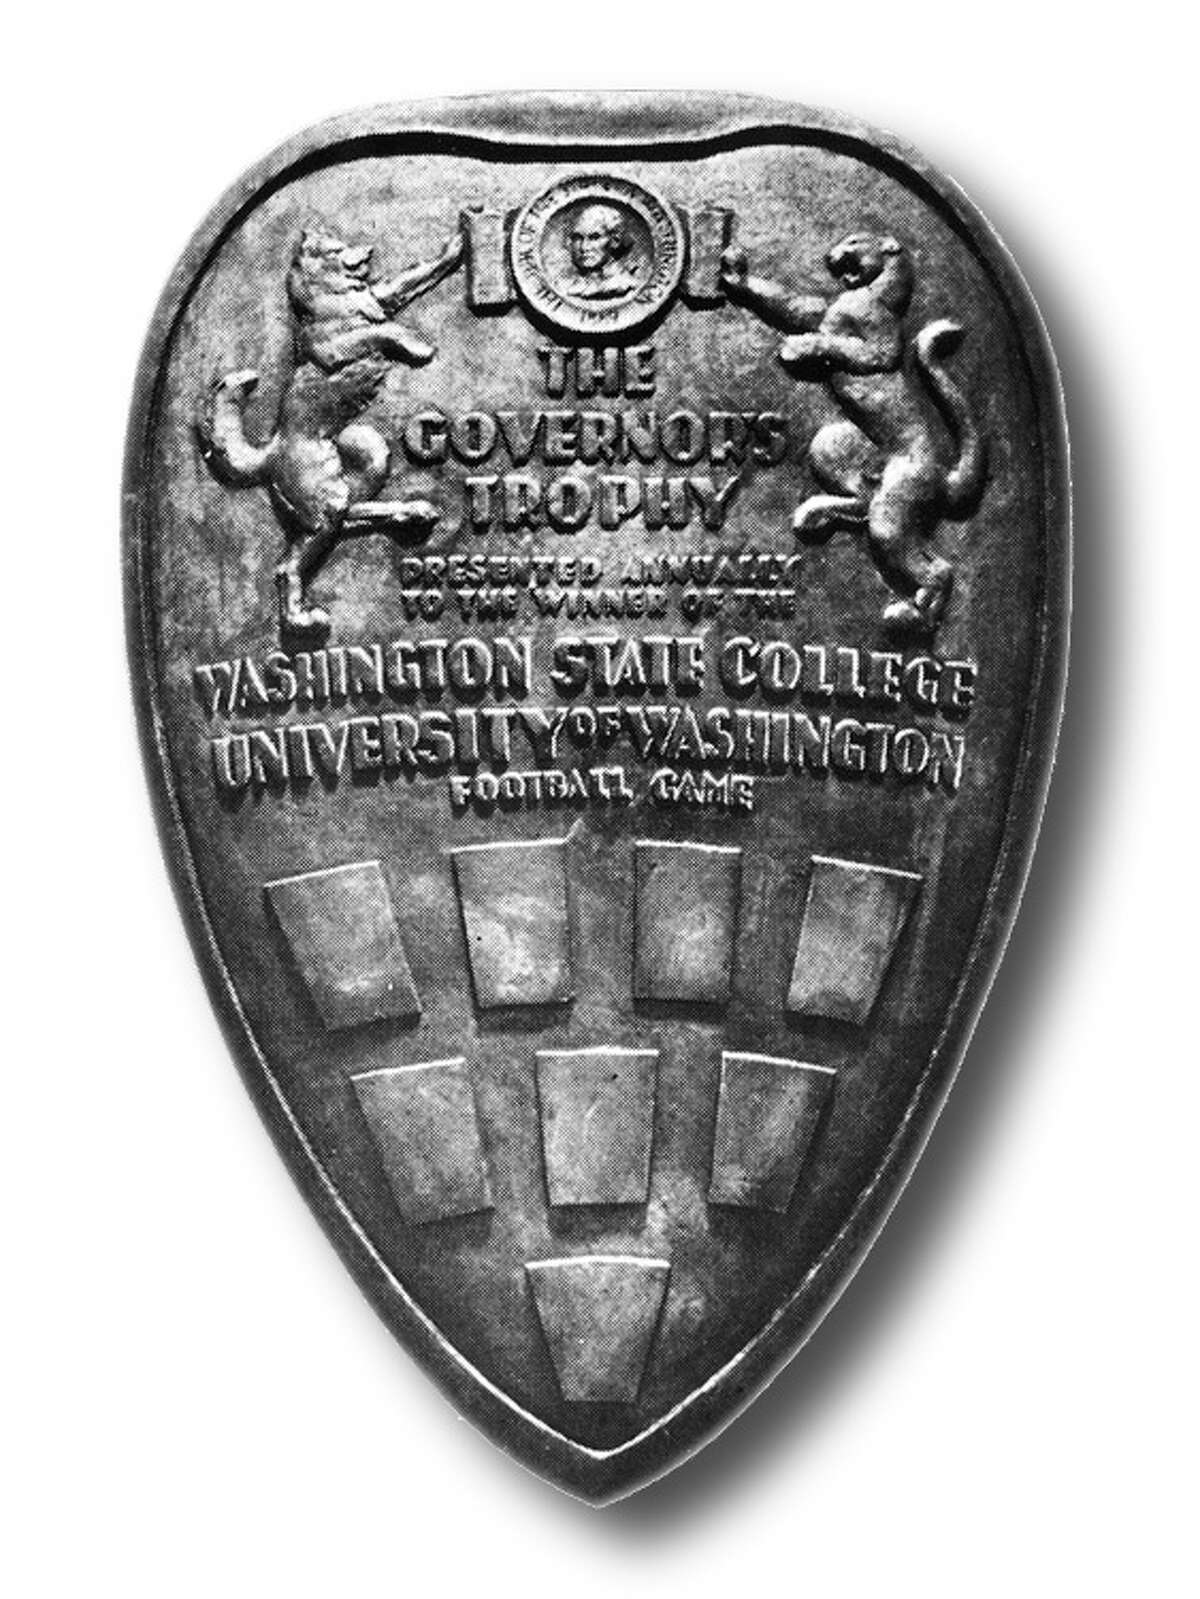 The Governor's TrophyThe rivalry wasn't officially called the Apple Cup until 1962. Before then, the winning team was given the Governor's Trophy, pictured above, instead of the Apple Cup. From 1959 through 1966, the Huskies had their first eight-game winning streak in the series, eventually to be followed by another eight-game streak from 1974 through 1981 and a six-game streak from 1998 through 2003. The Cougars have never won more than two Apple Cups in a row, most recently achieving the feat in 2007 and 2008.